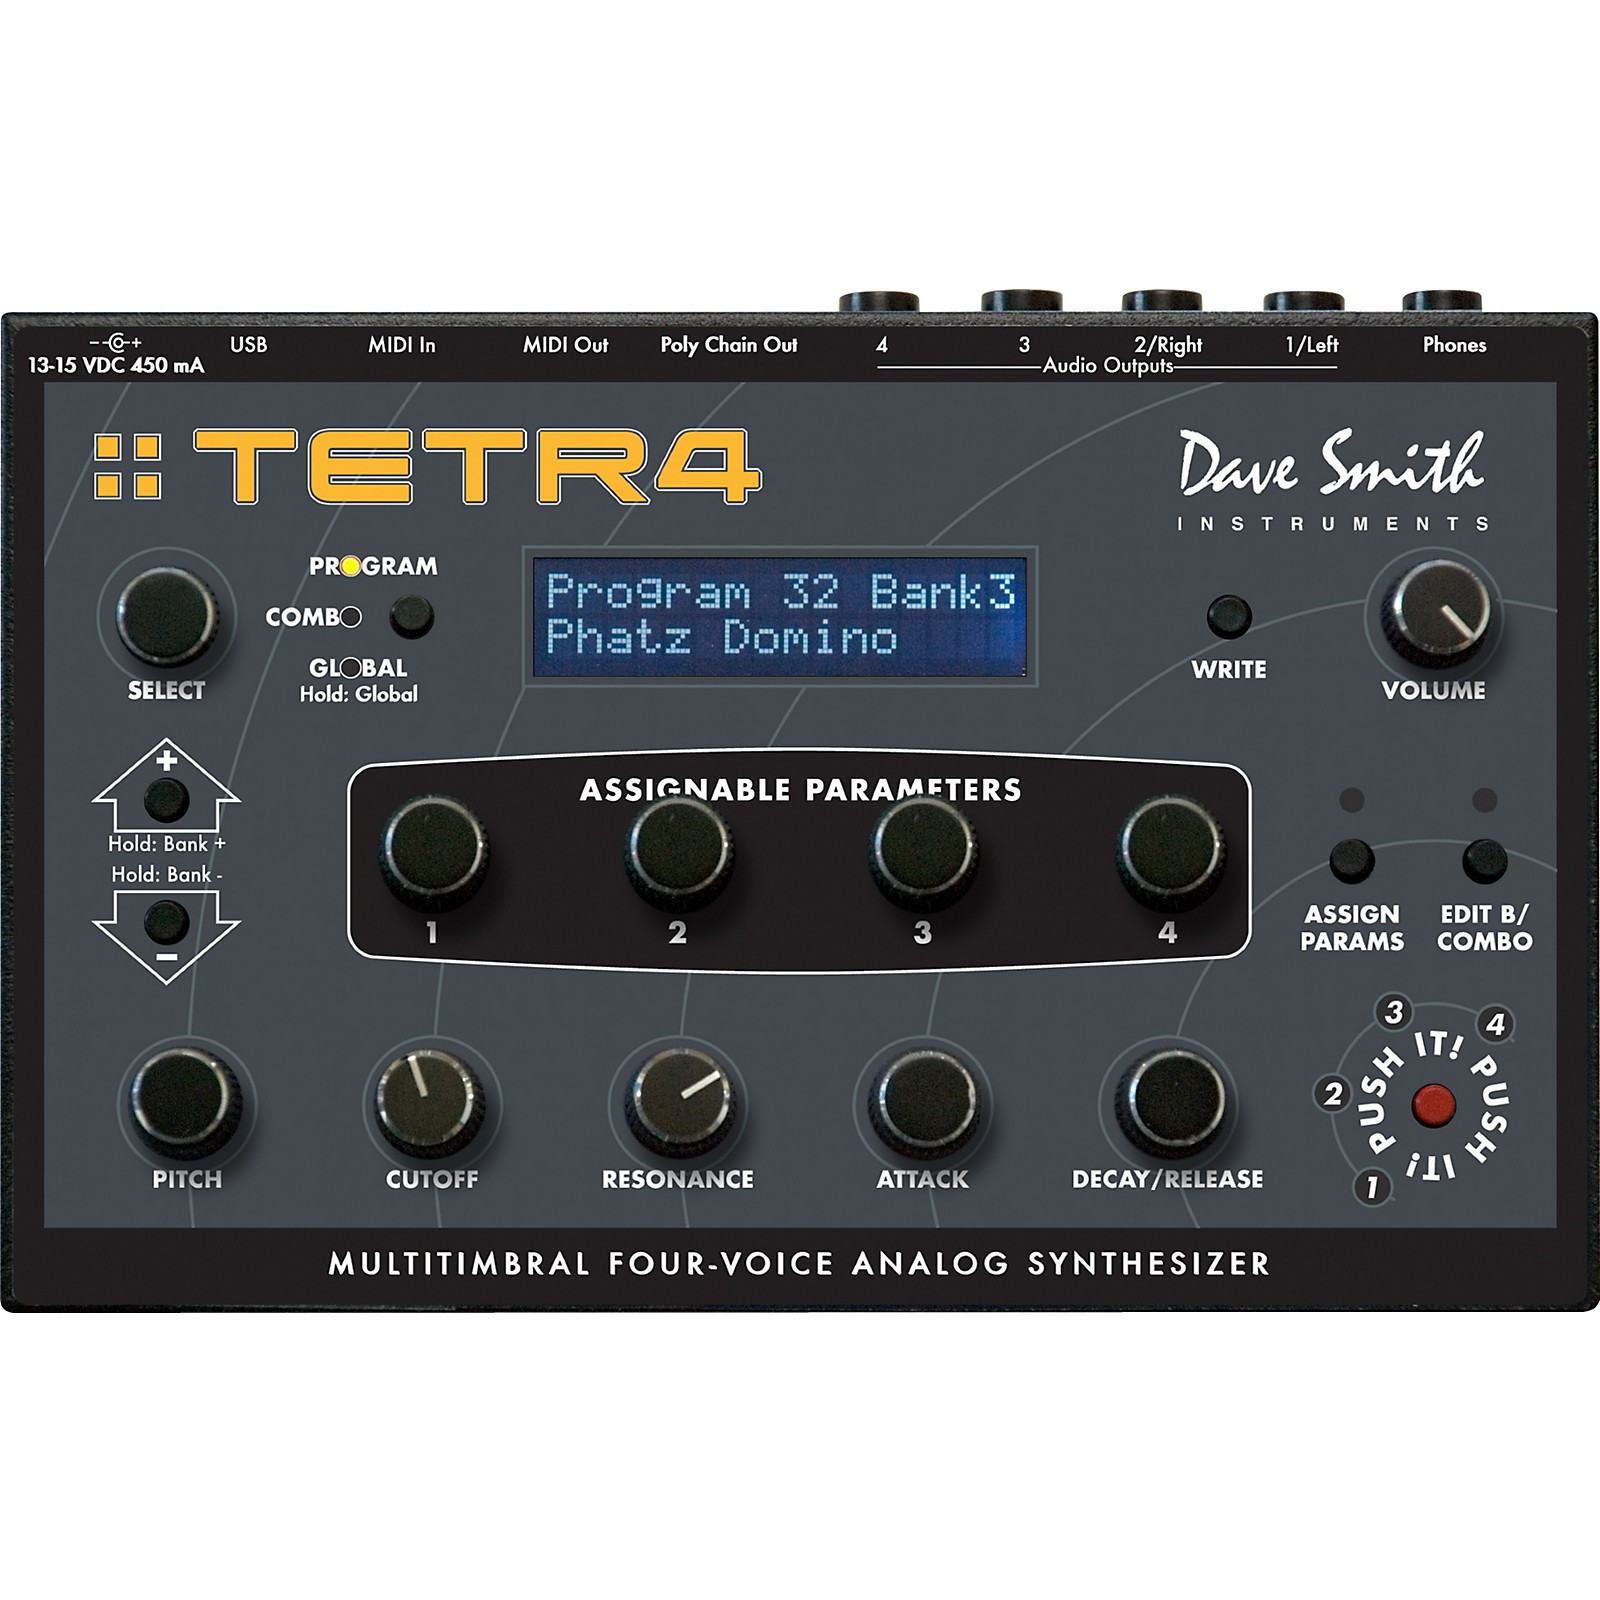 Sequential Tetra Multitimbral Four-Voice Analog Synthesizer